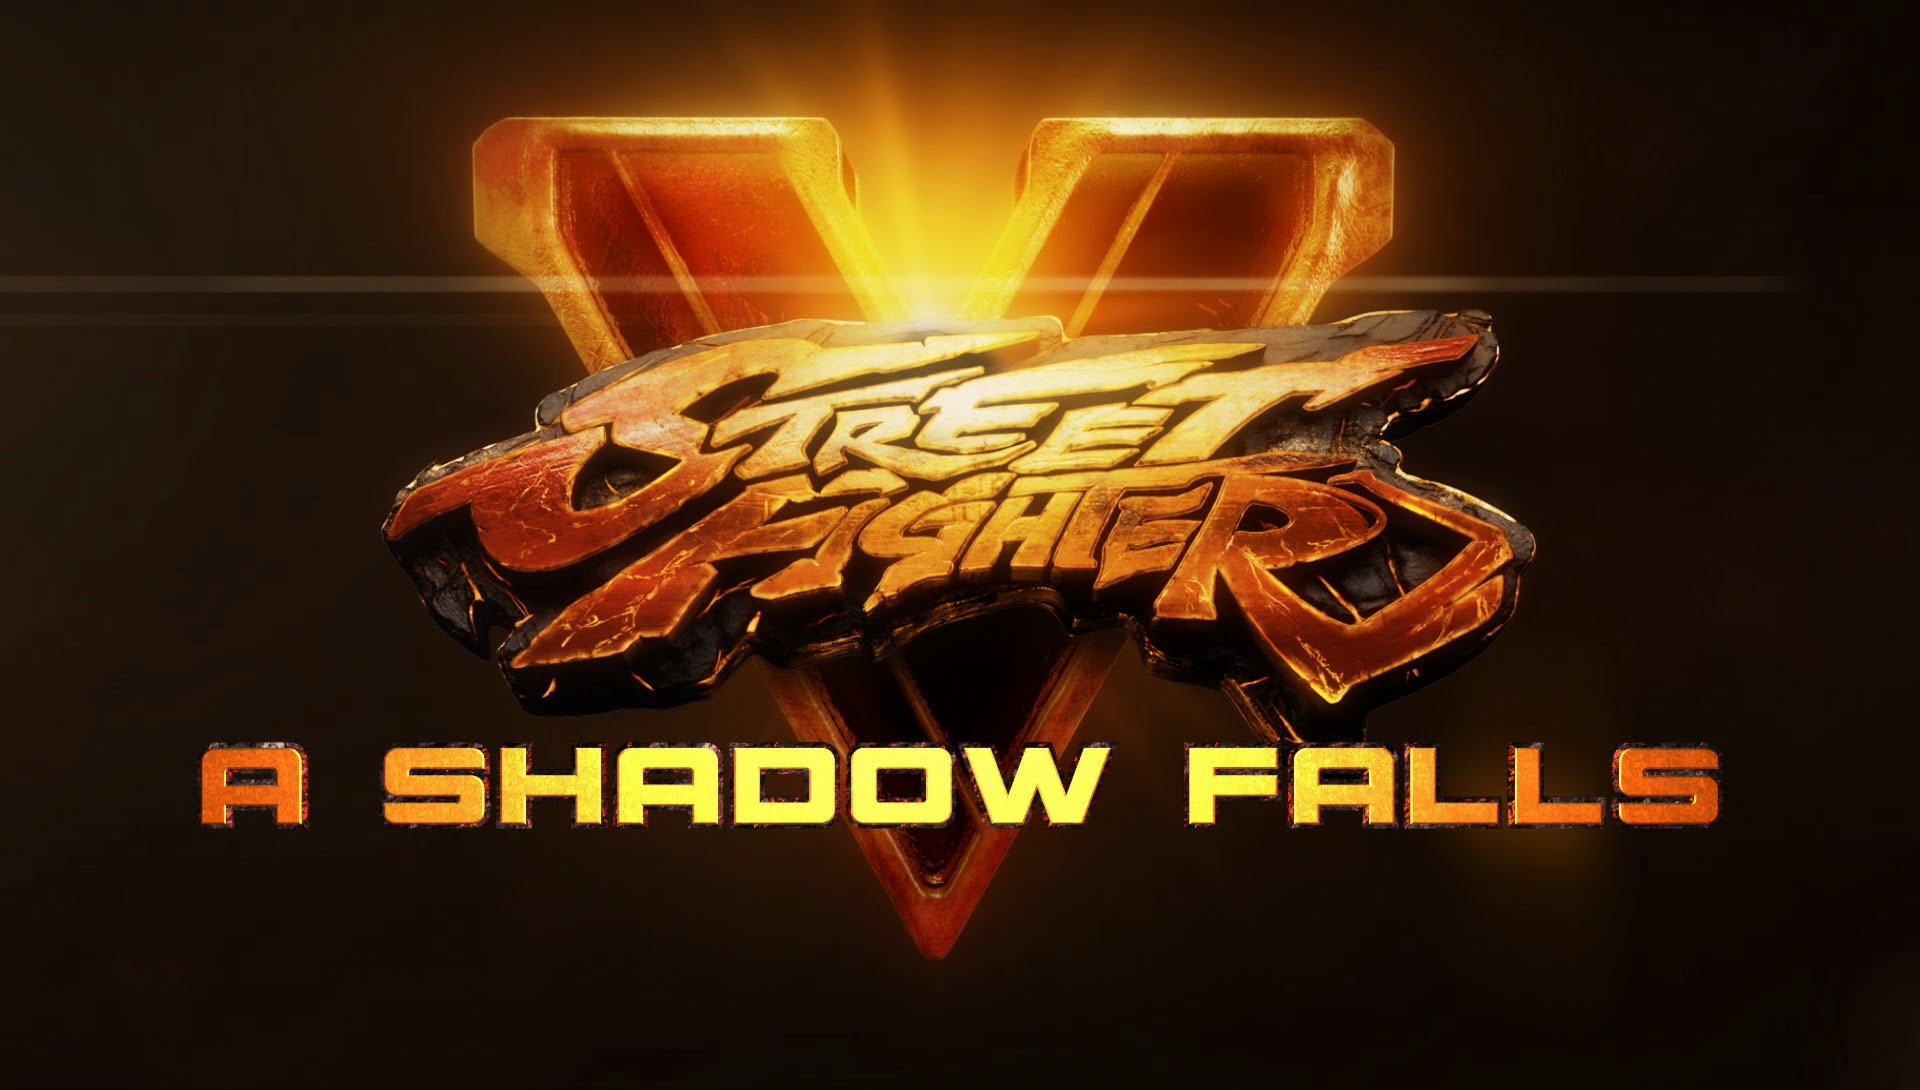 Street Fighter V - A Shadow Falls, Launch Trailer